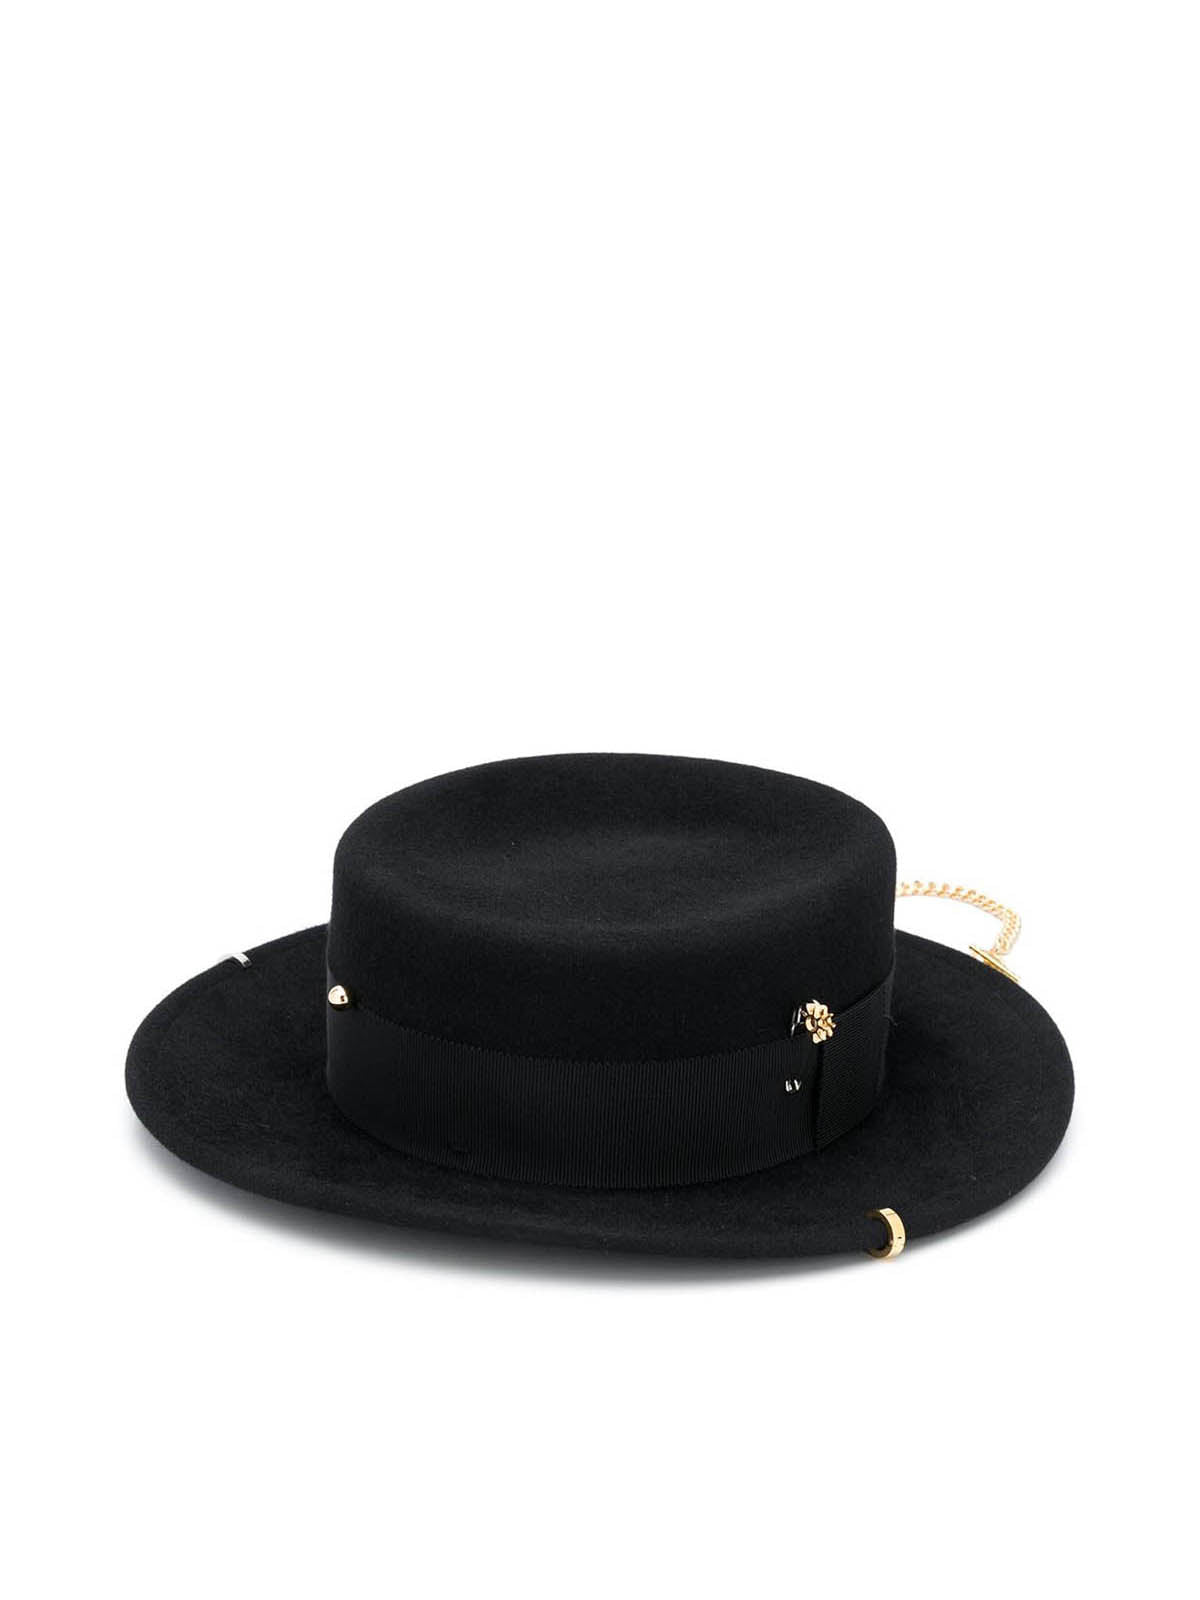 chain-trimmed hat